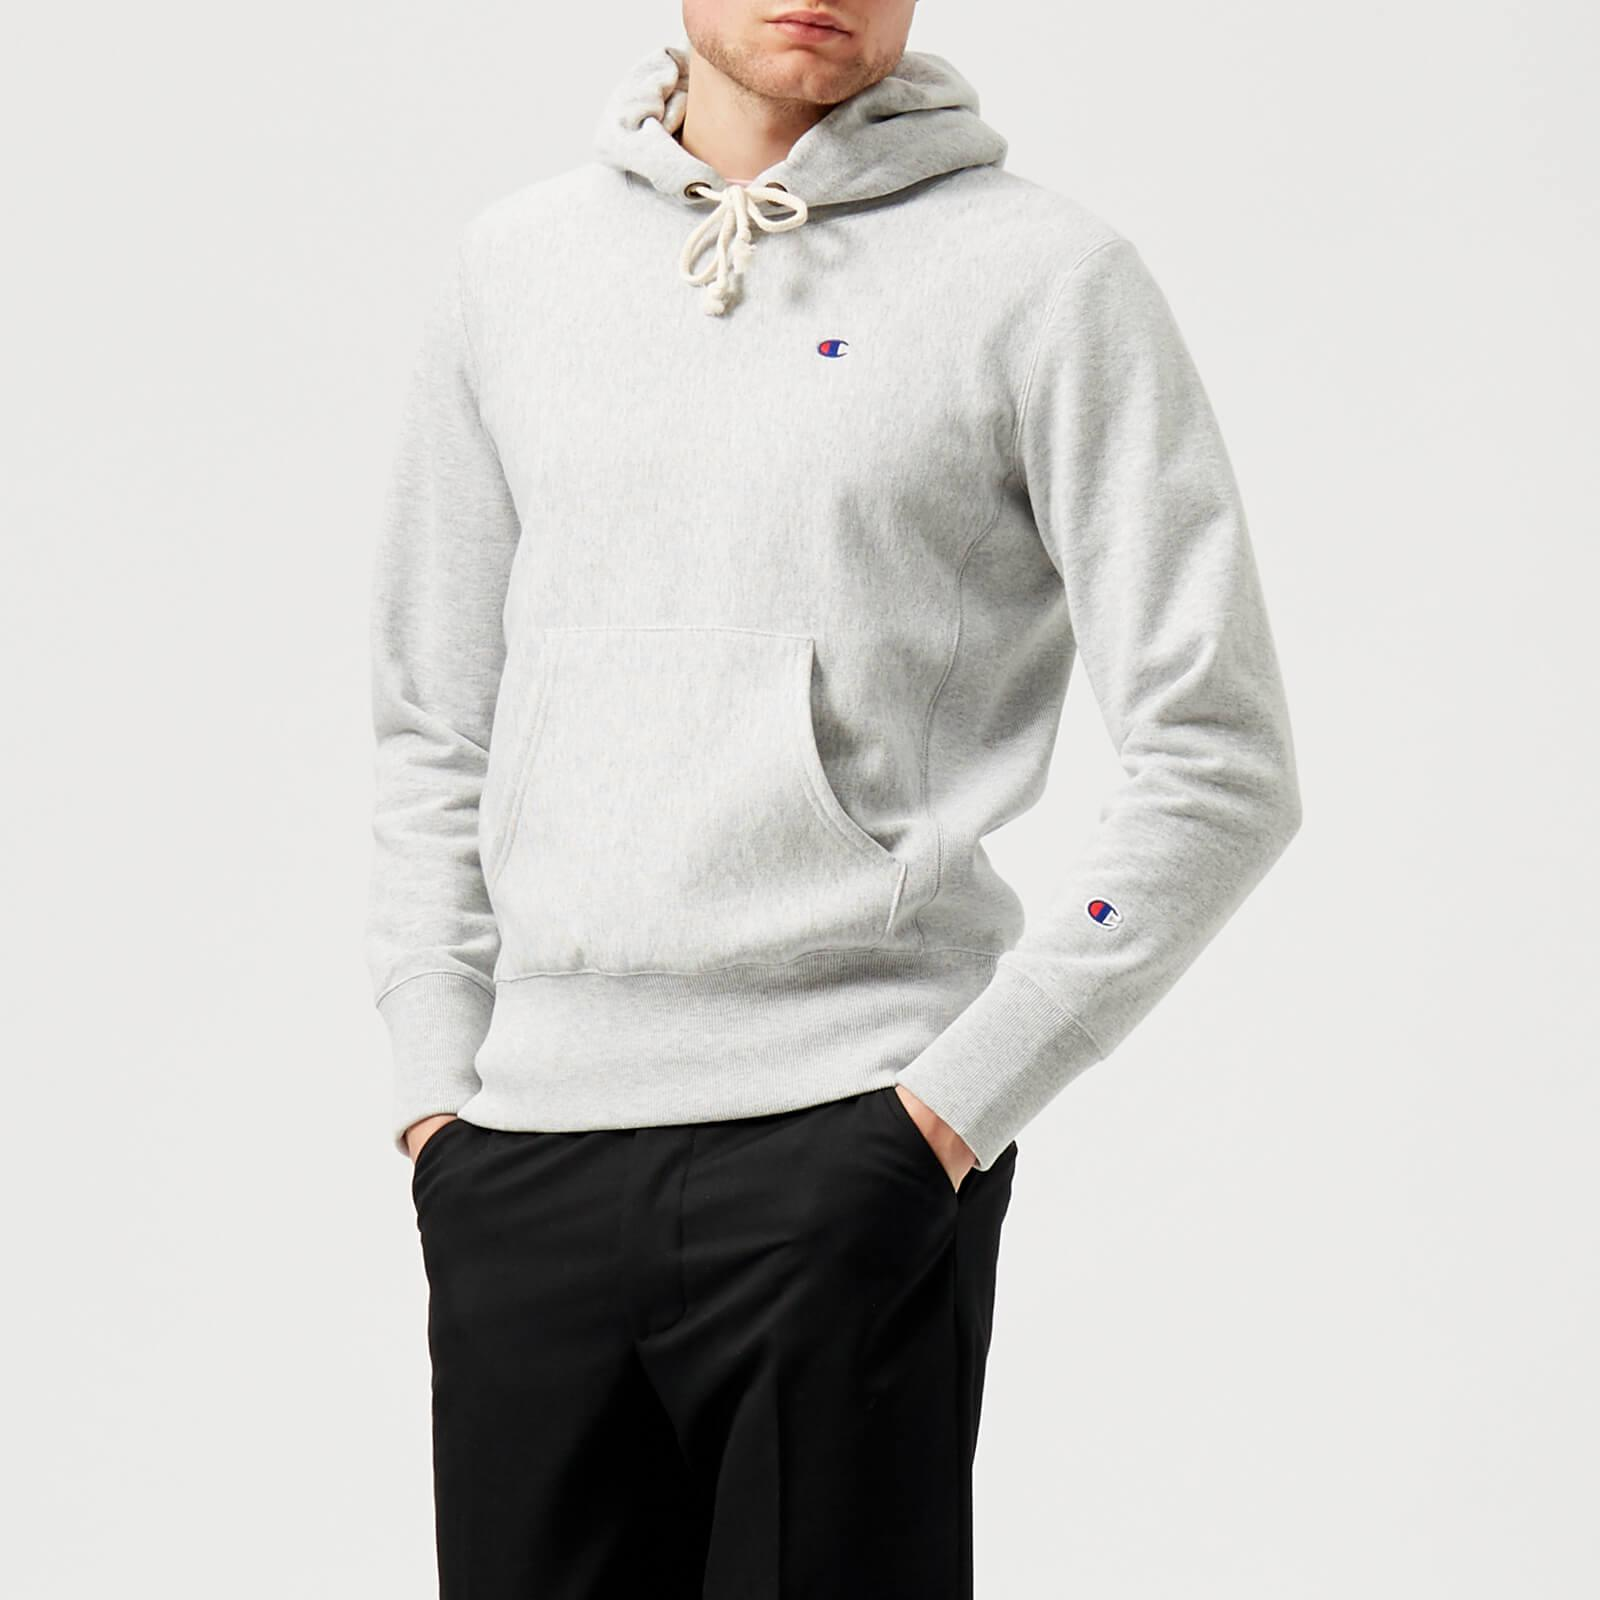 721f5554 Champion Classic Hoody in Gray for Men - Lyst